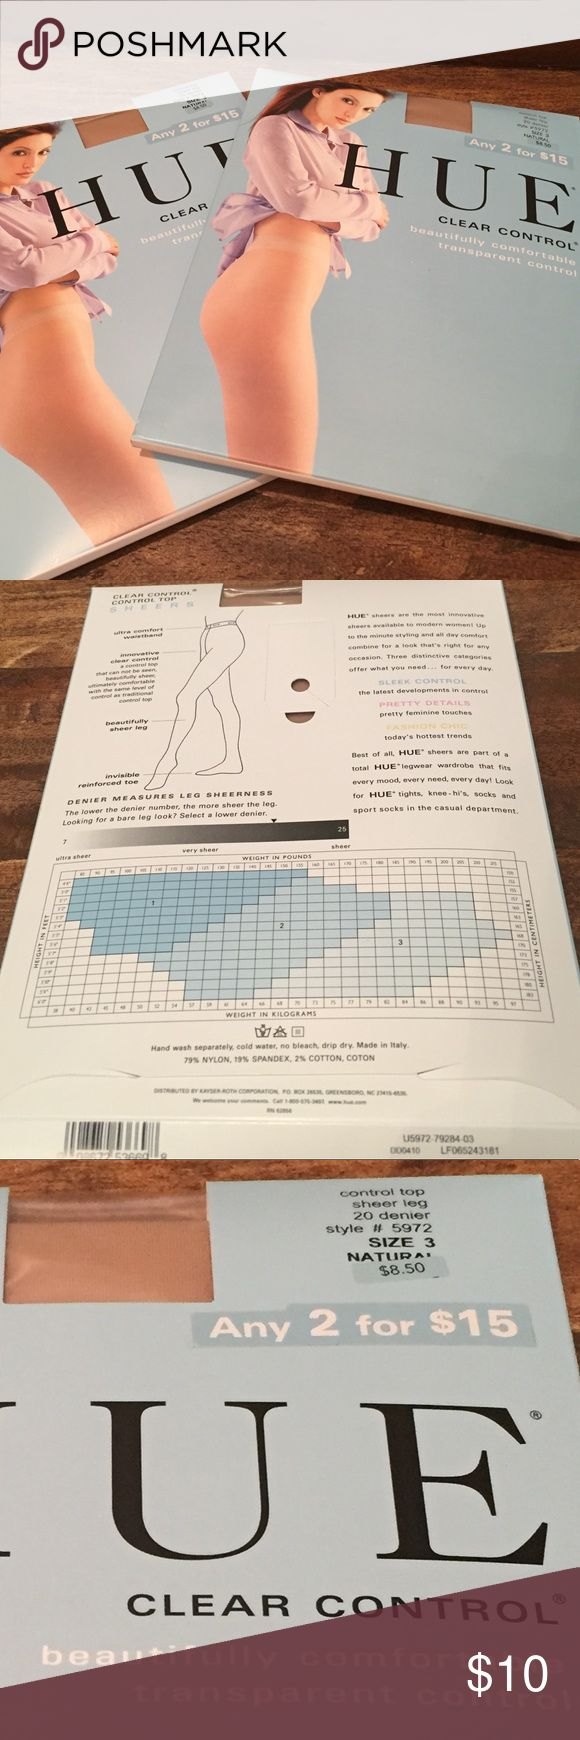 New 2 Pack HUE Clear Control Pantyhose Brand new, set of 2 pairs! HUE Clear Control Pantyhose. Both pairs are size 3 in the color Natural. HUE Accessories Hosiery & Socks